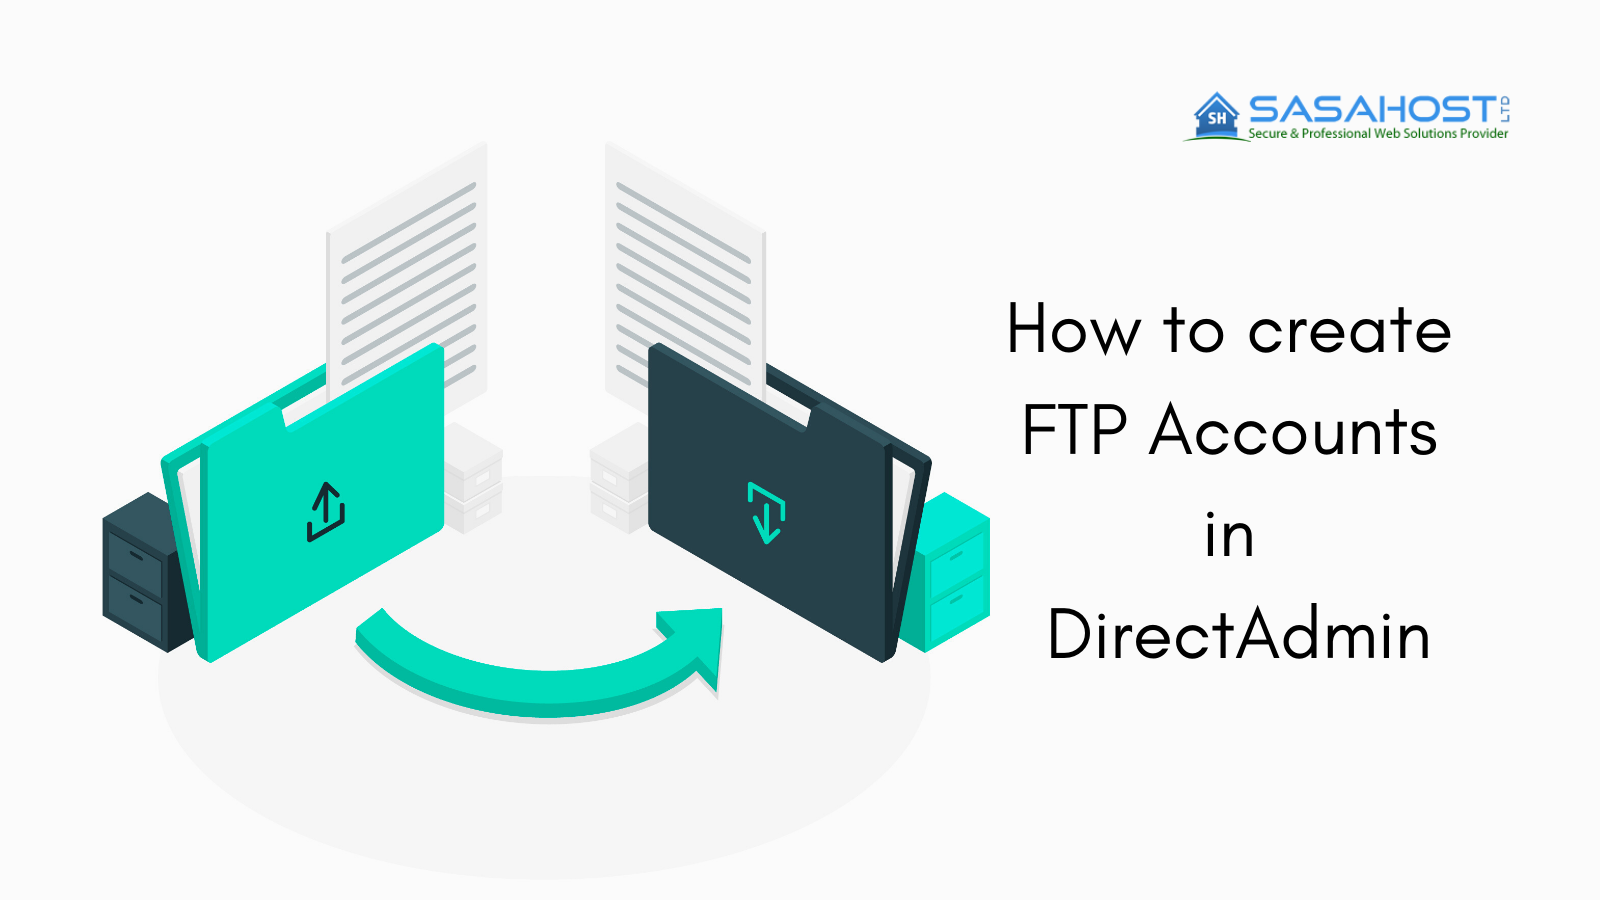 How to create FTP Accounts in DirectAdmin